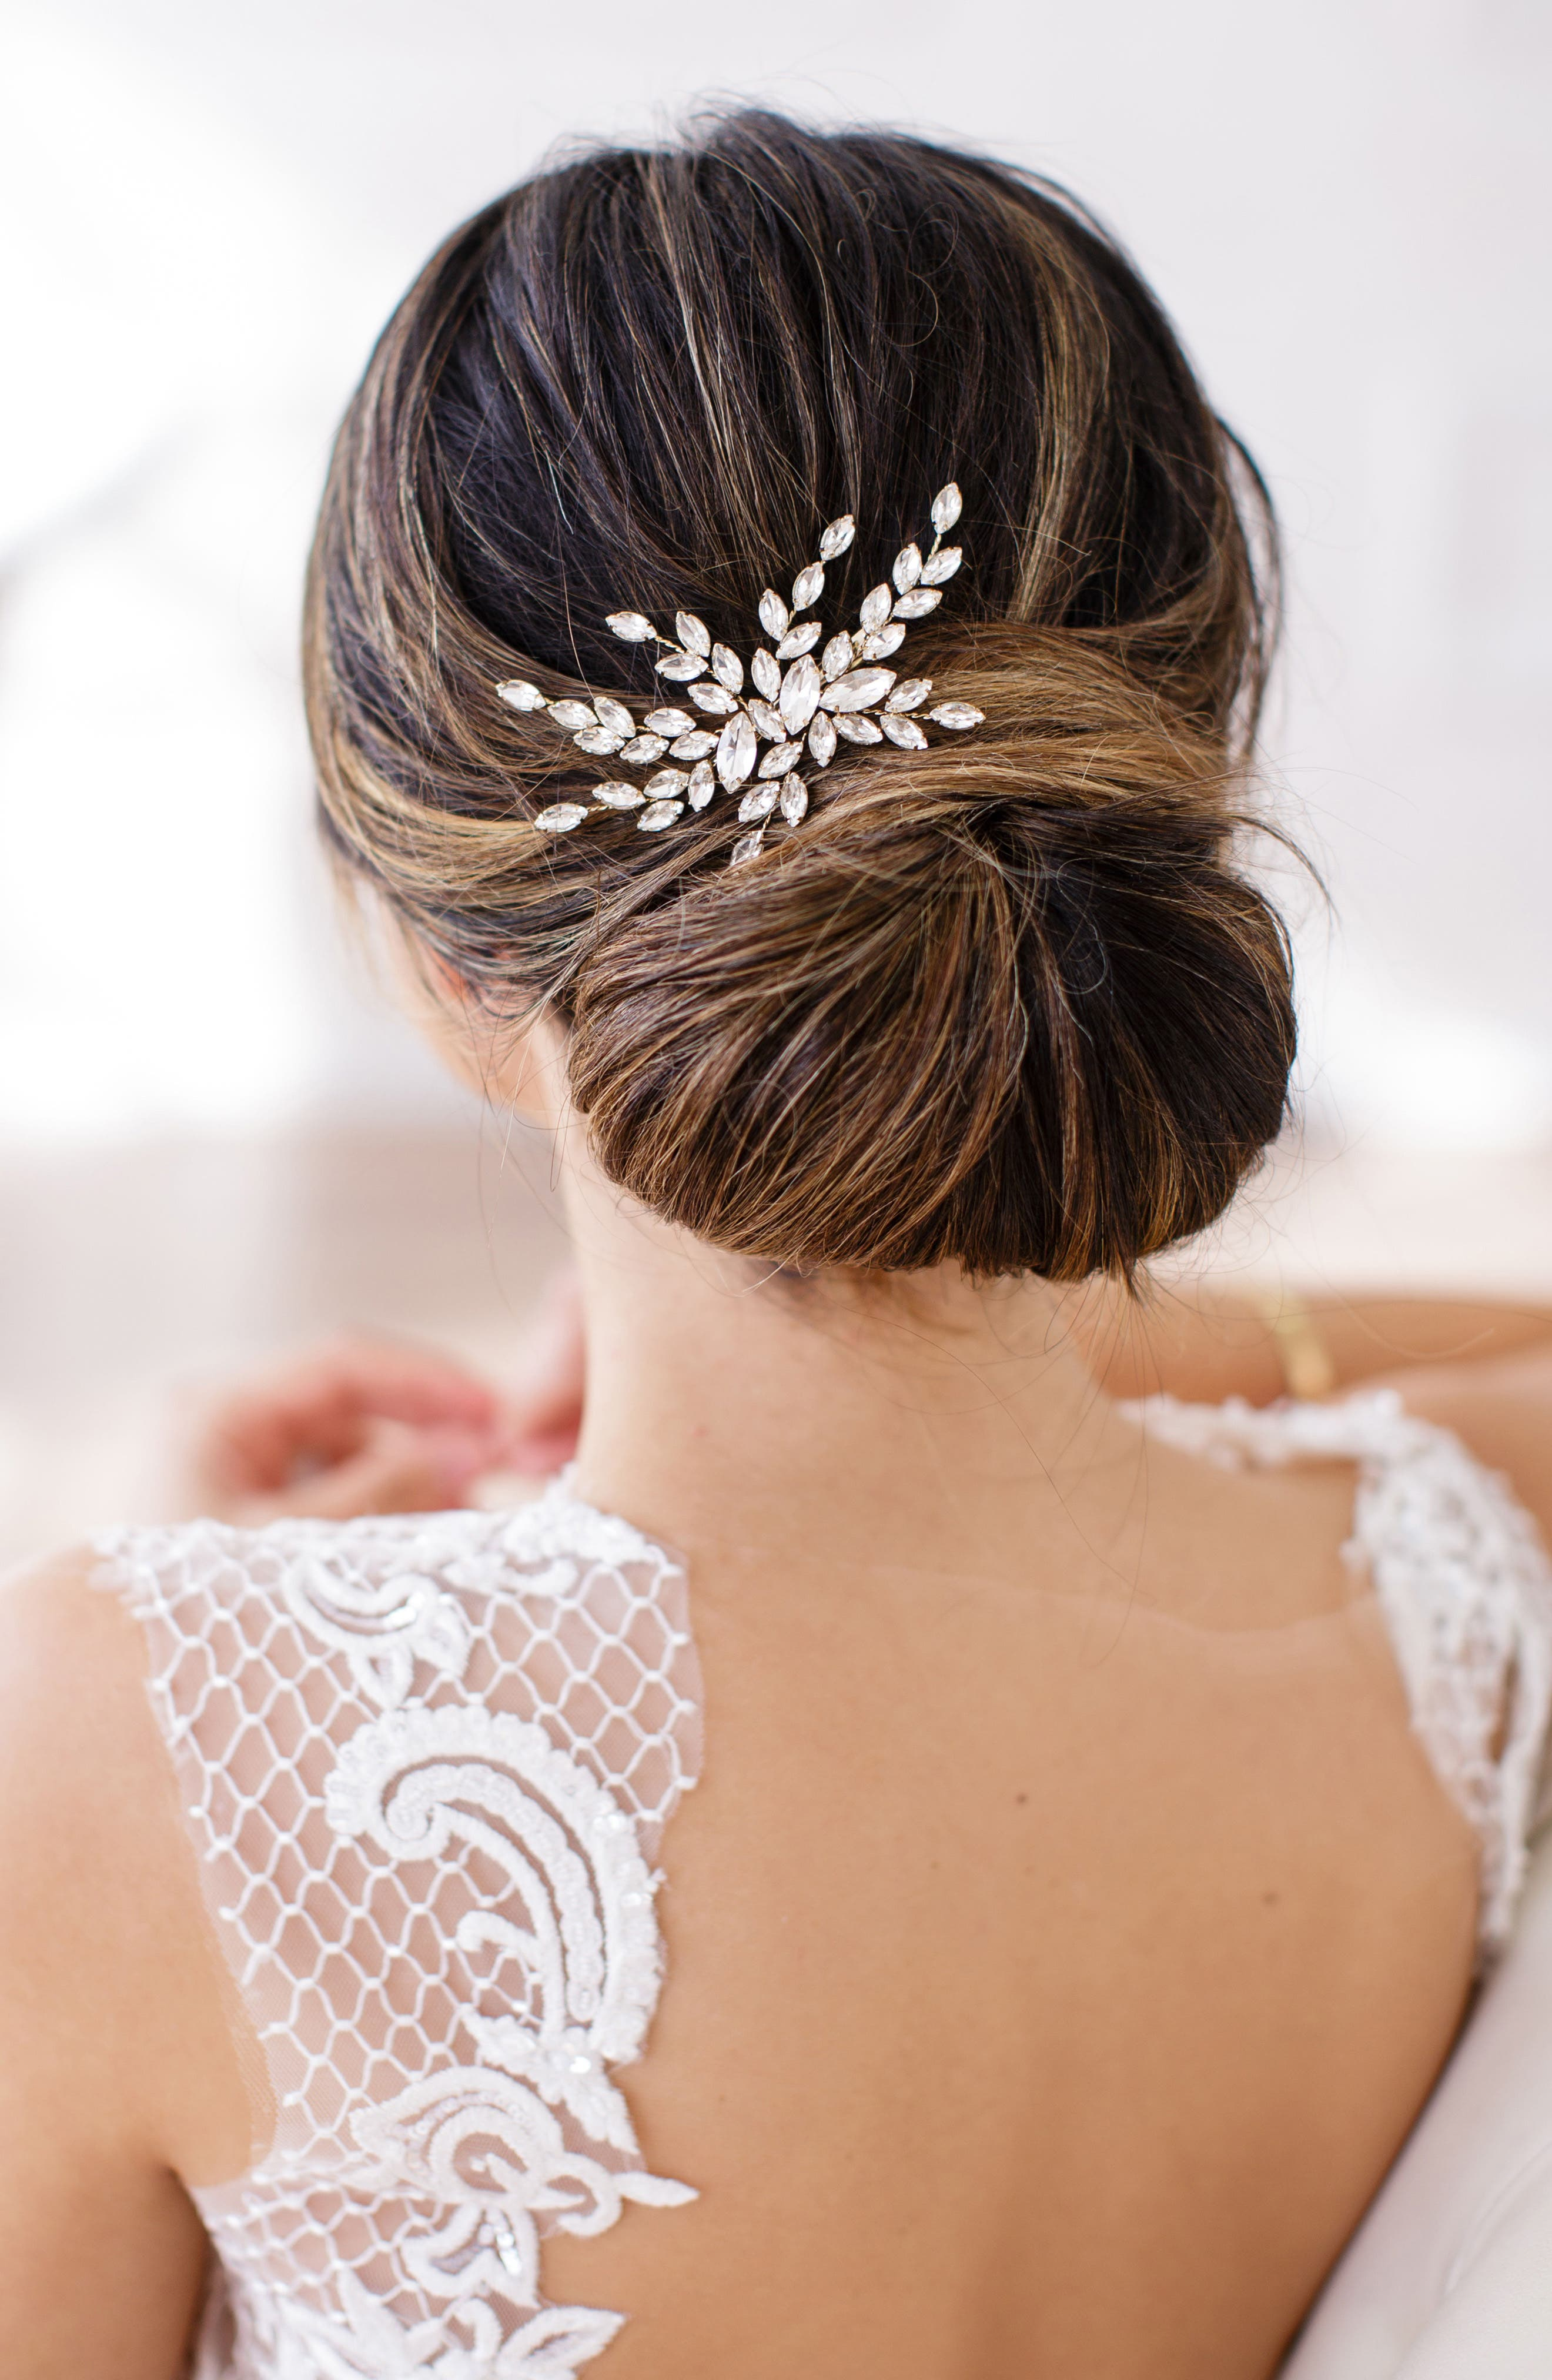 Alternate Image 1 Selected - Brides & Hairpins Isadora Crystal Hair Clip